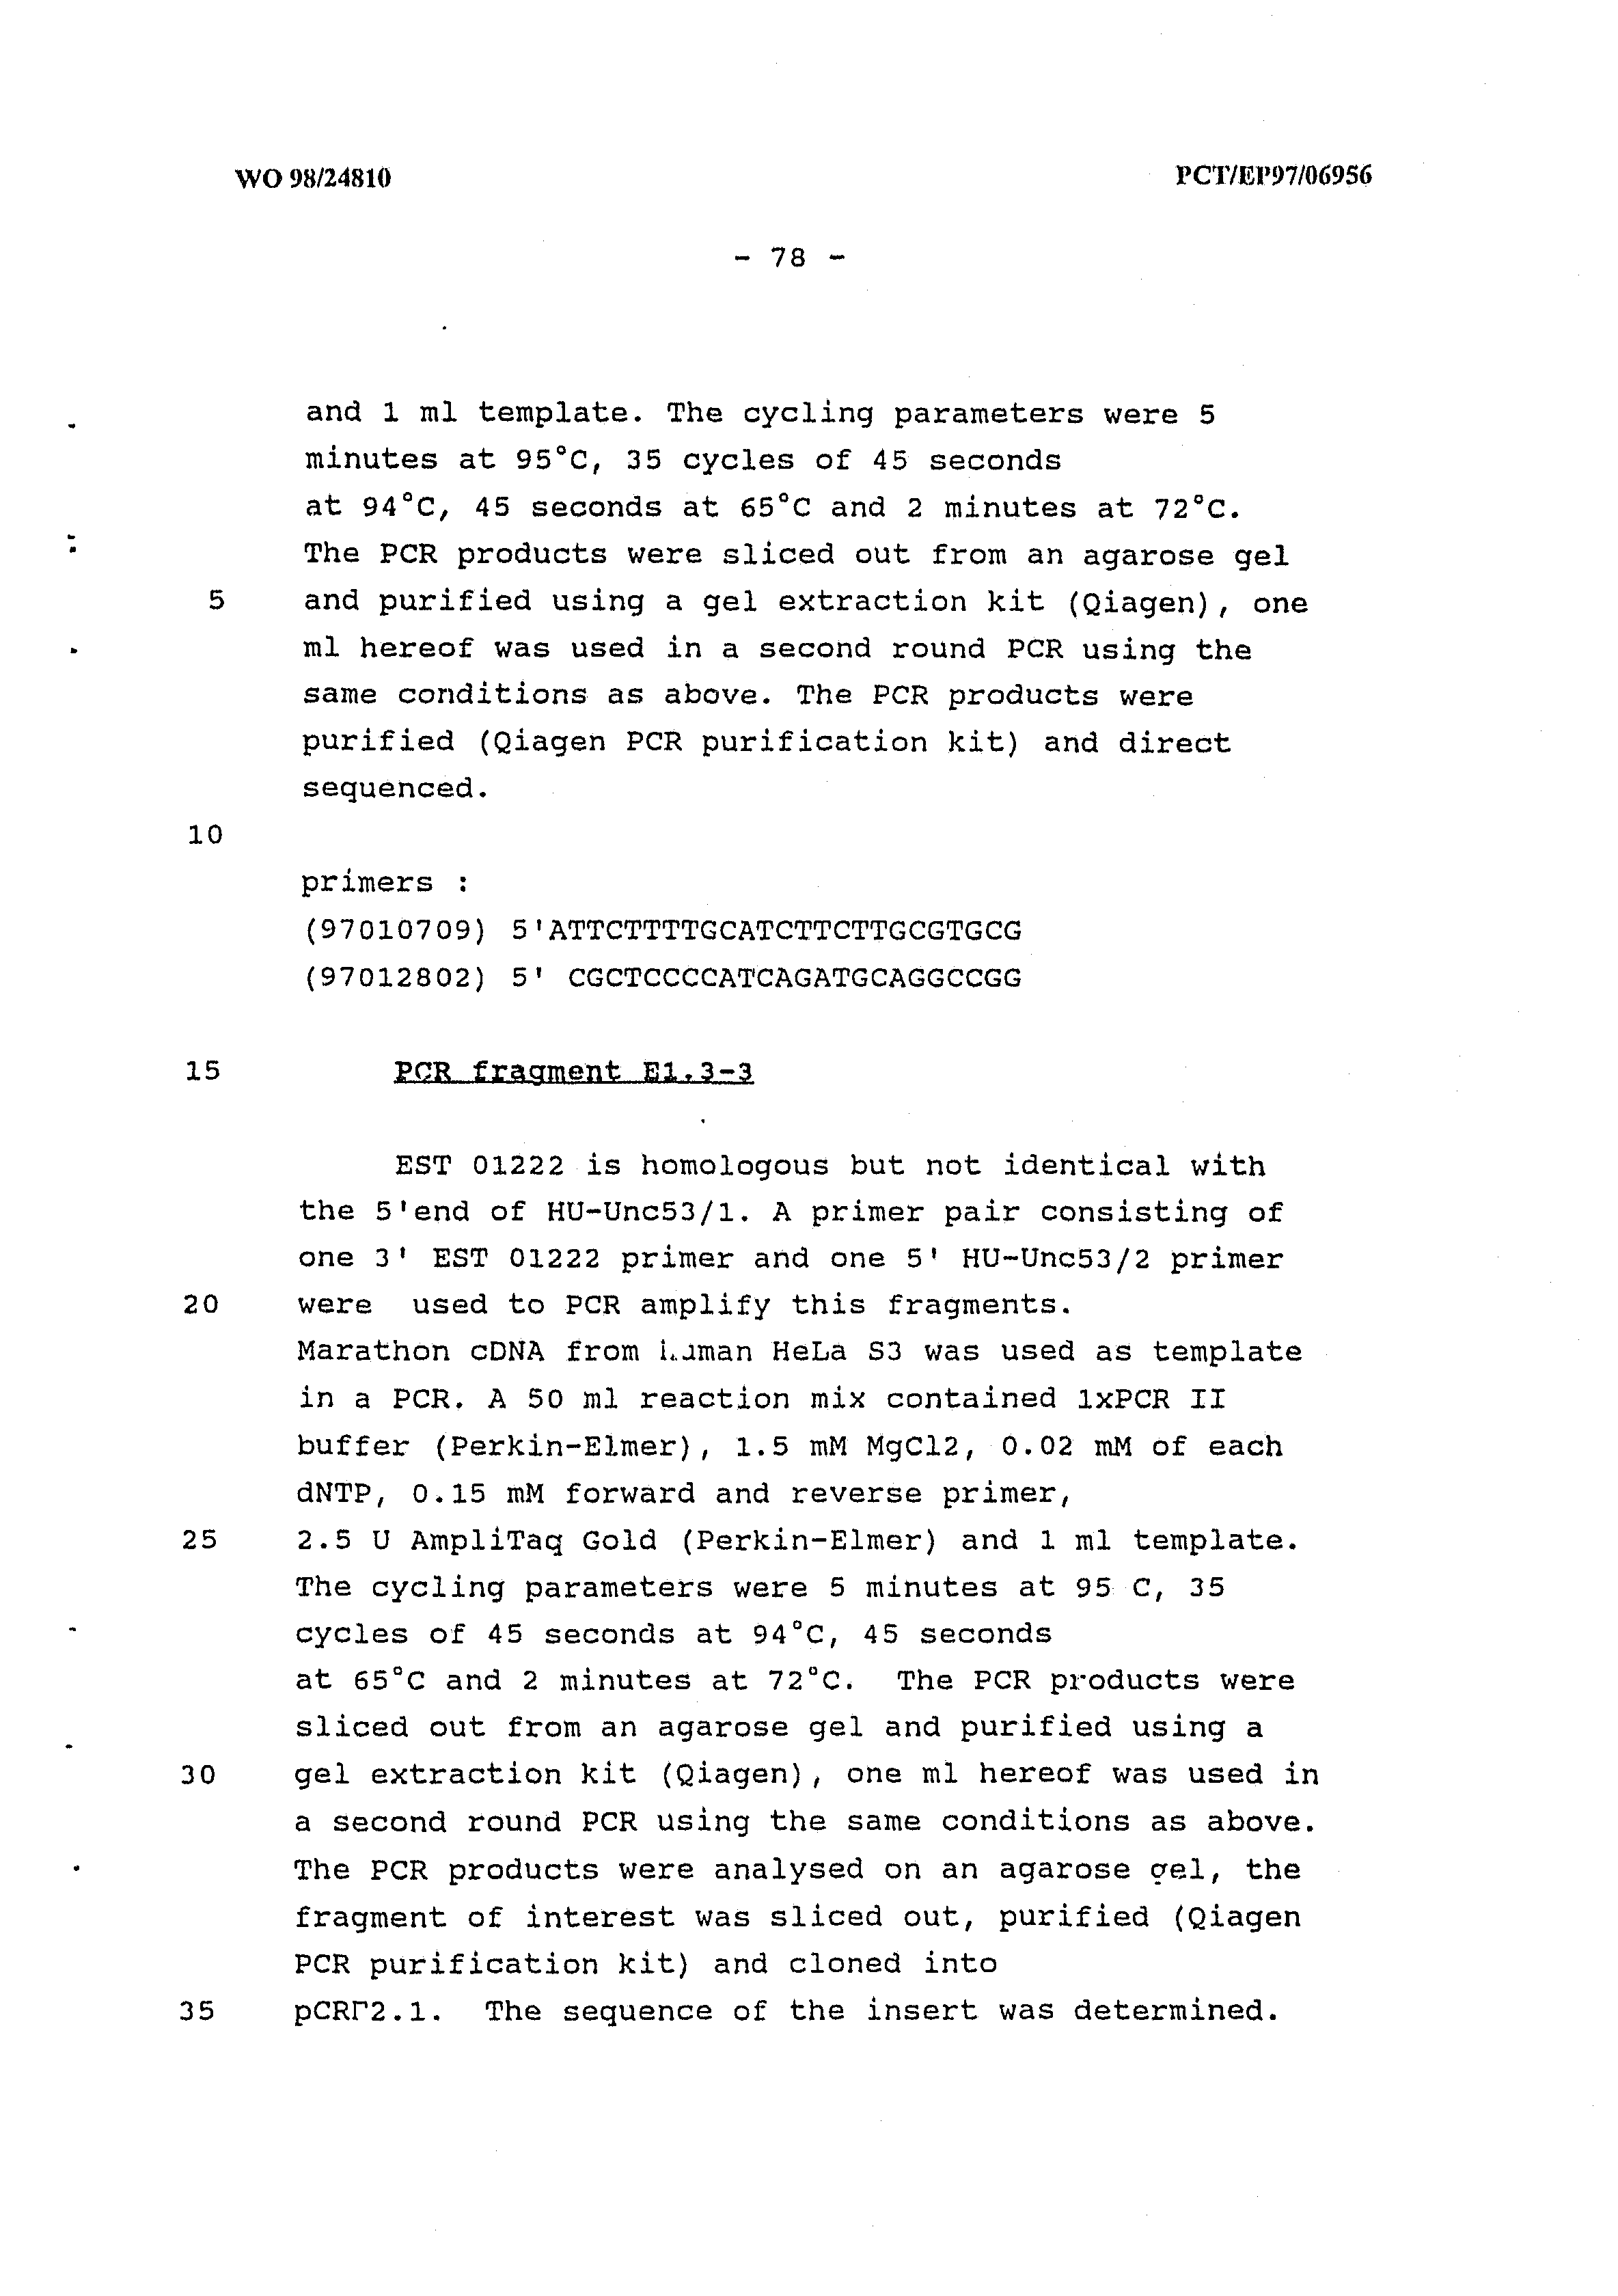 au 1998 056622 a vertebrate homologues of unc 53 protein of c